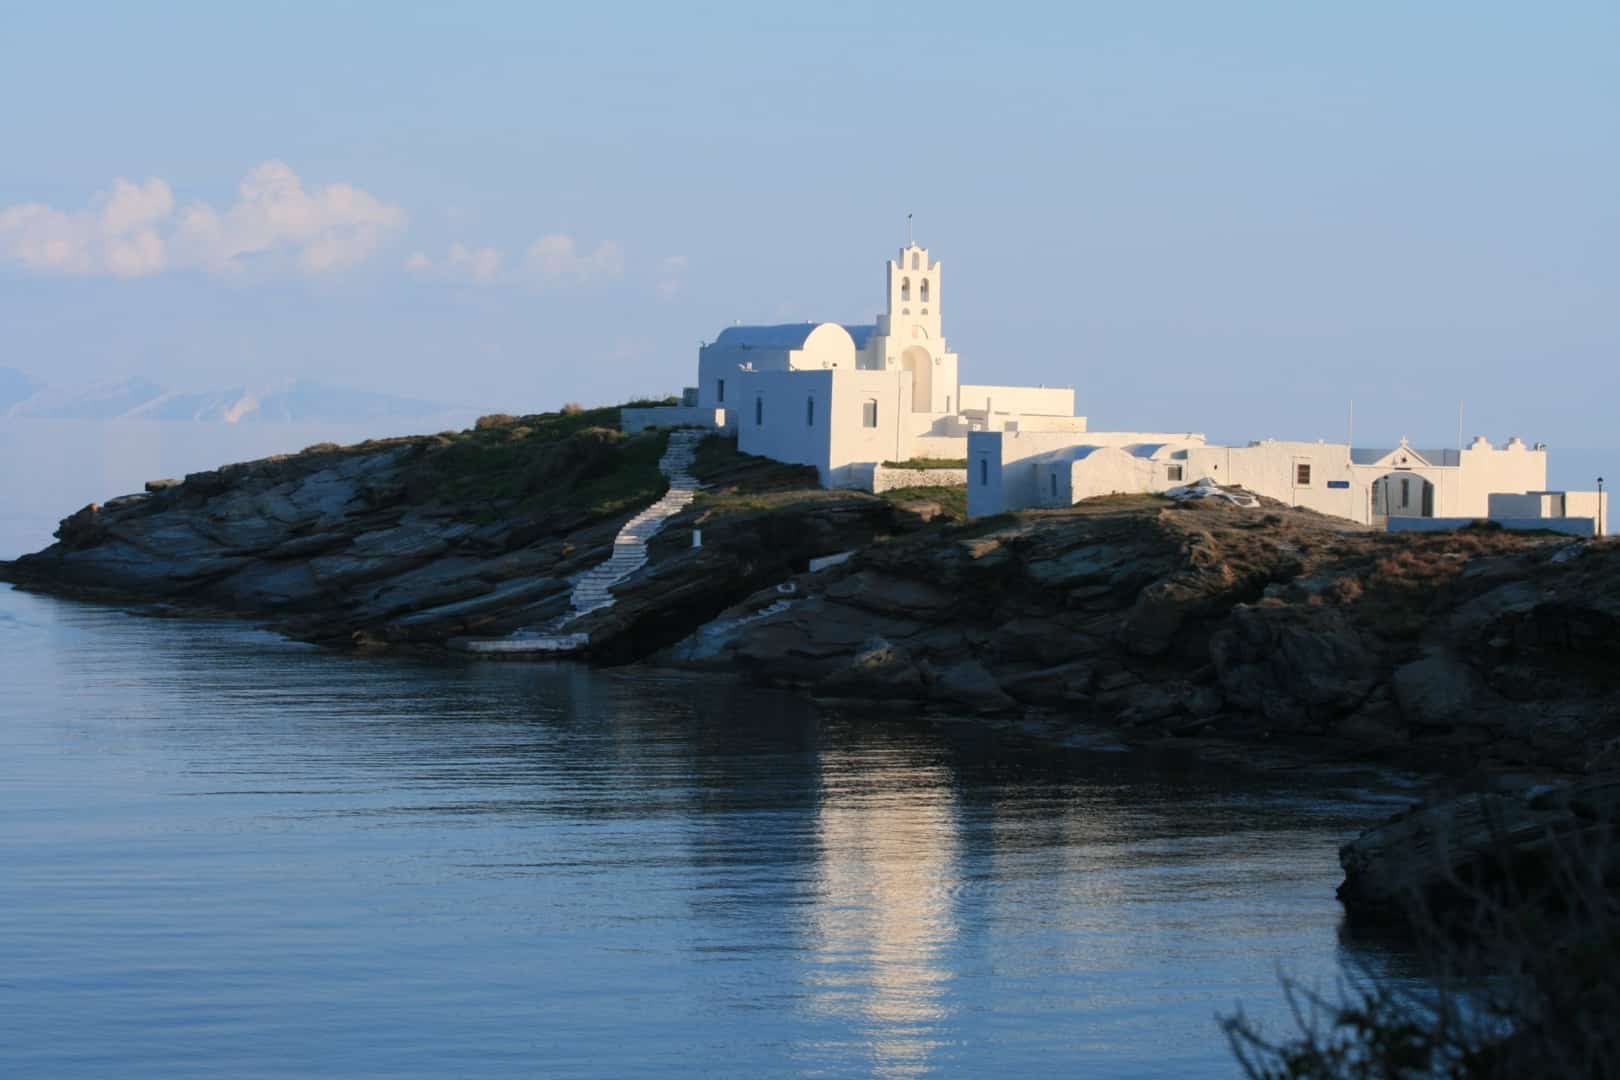 The monastery of Xrysophgh, Sifnos